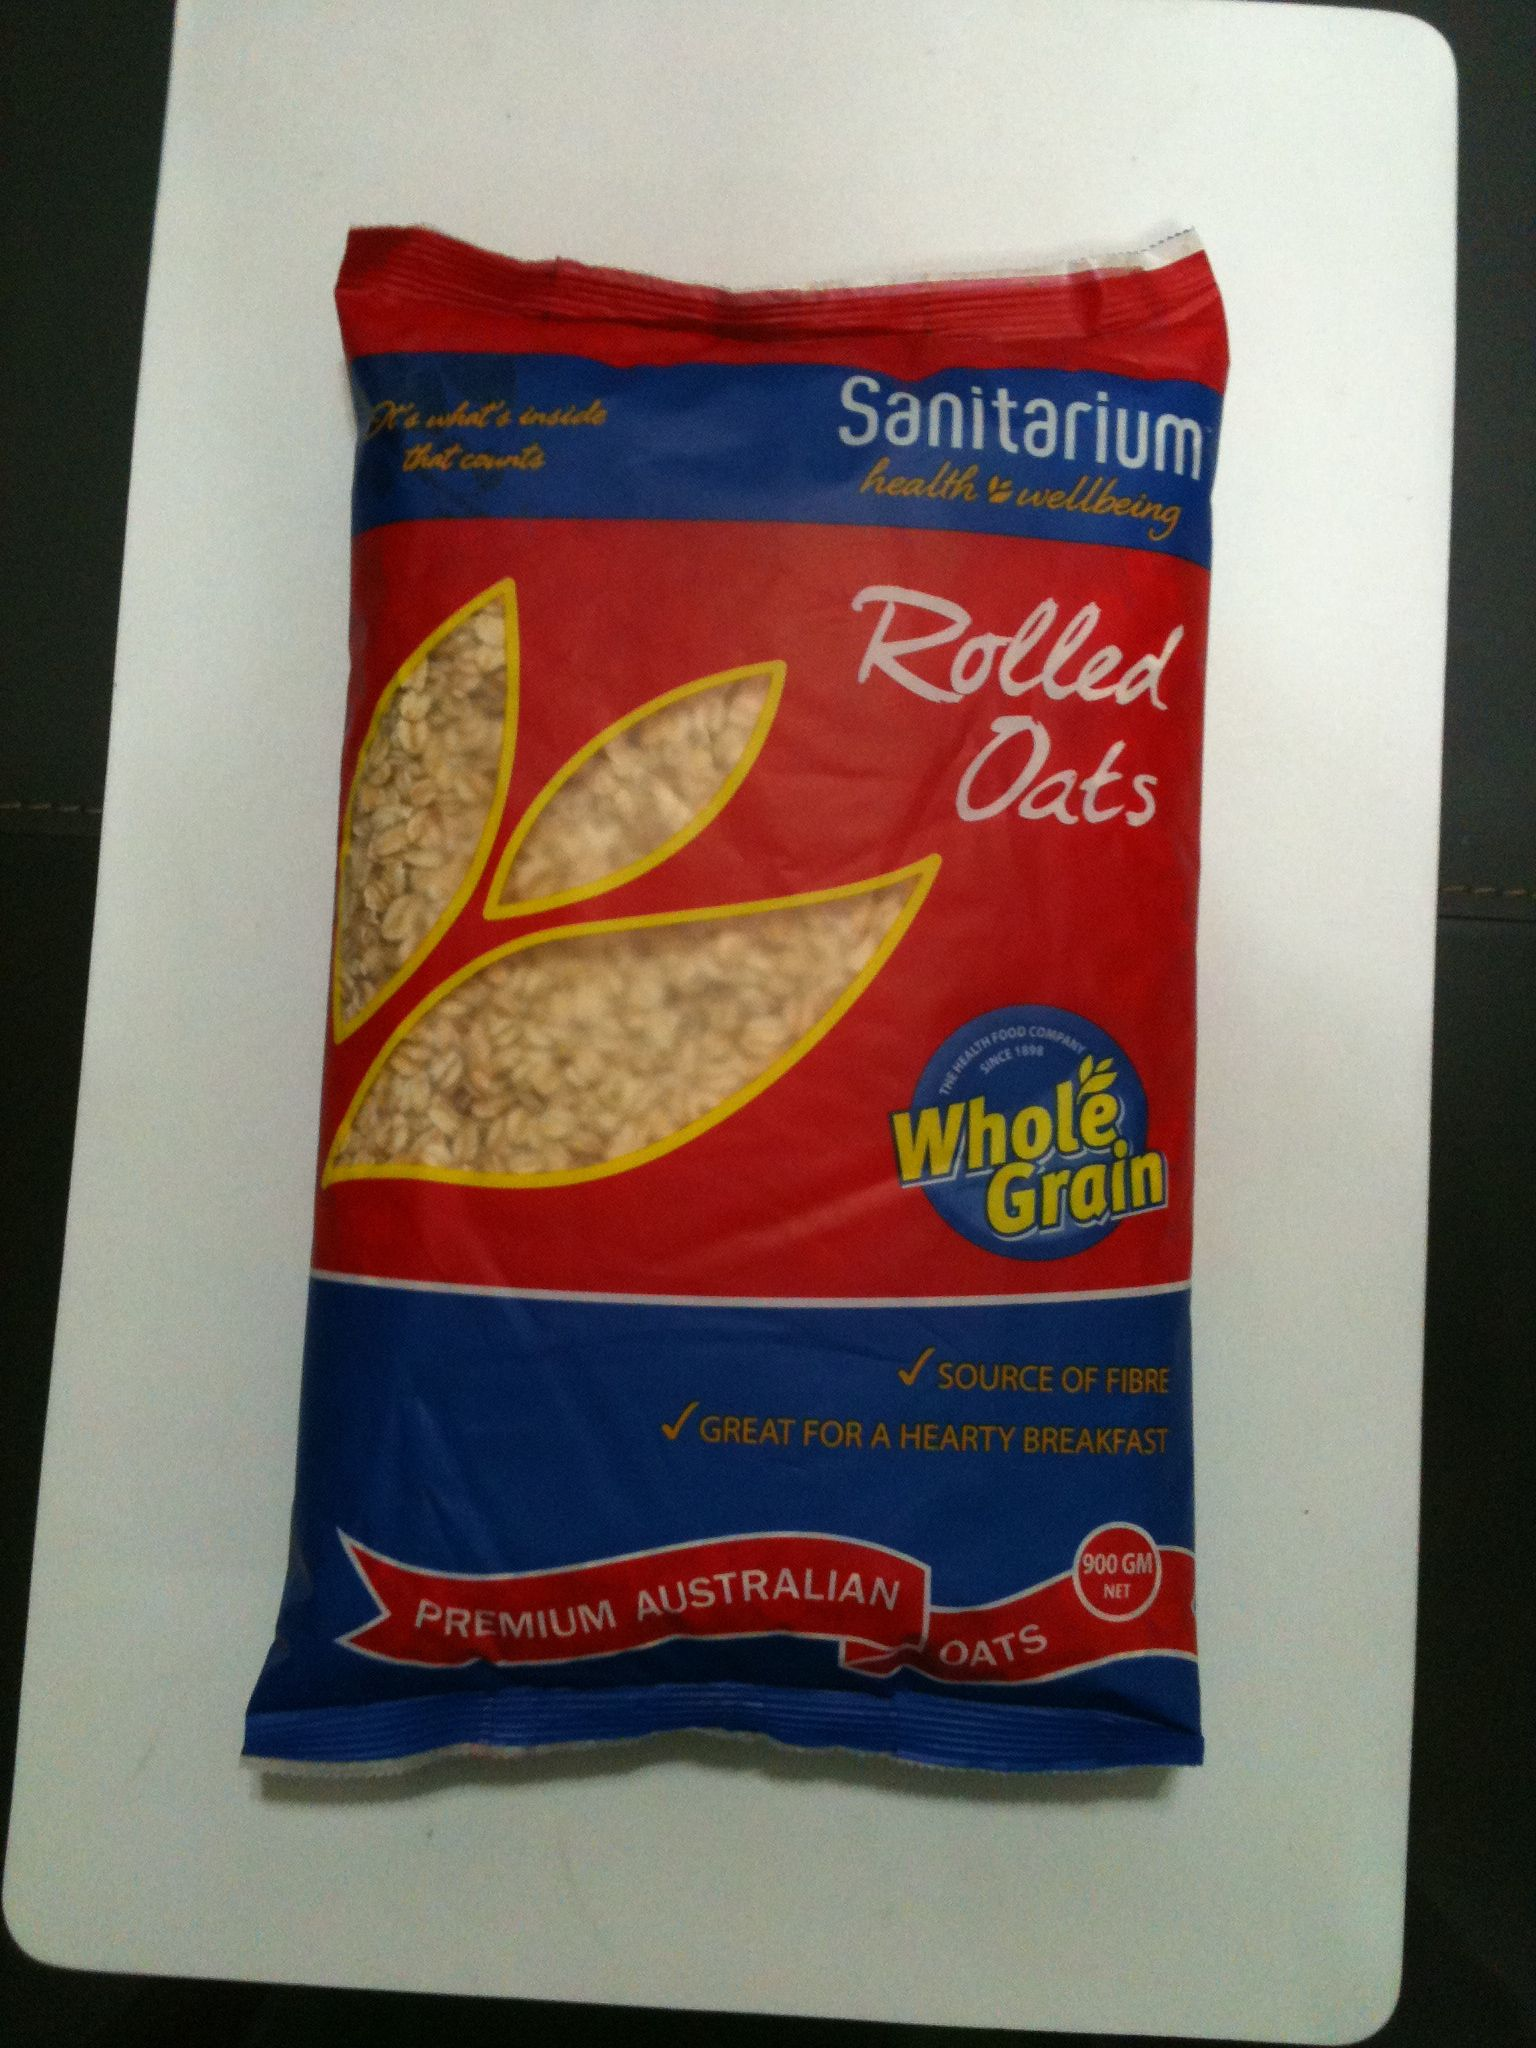 Sanitarium whole grain rolled oats; RM9 for 900gm.